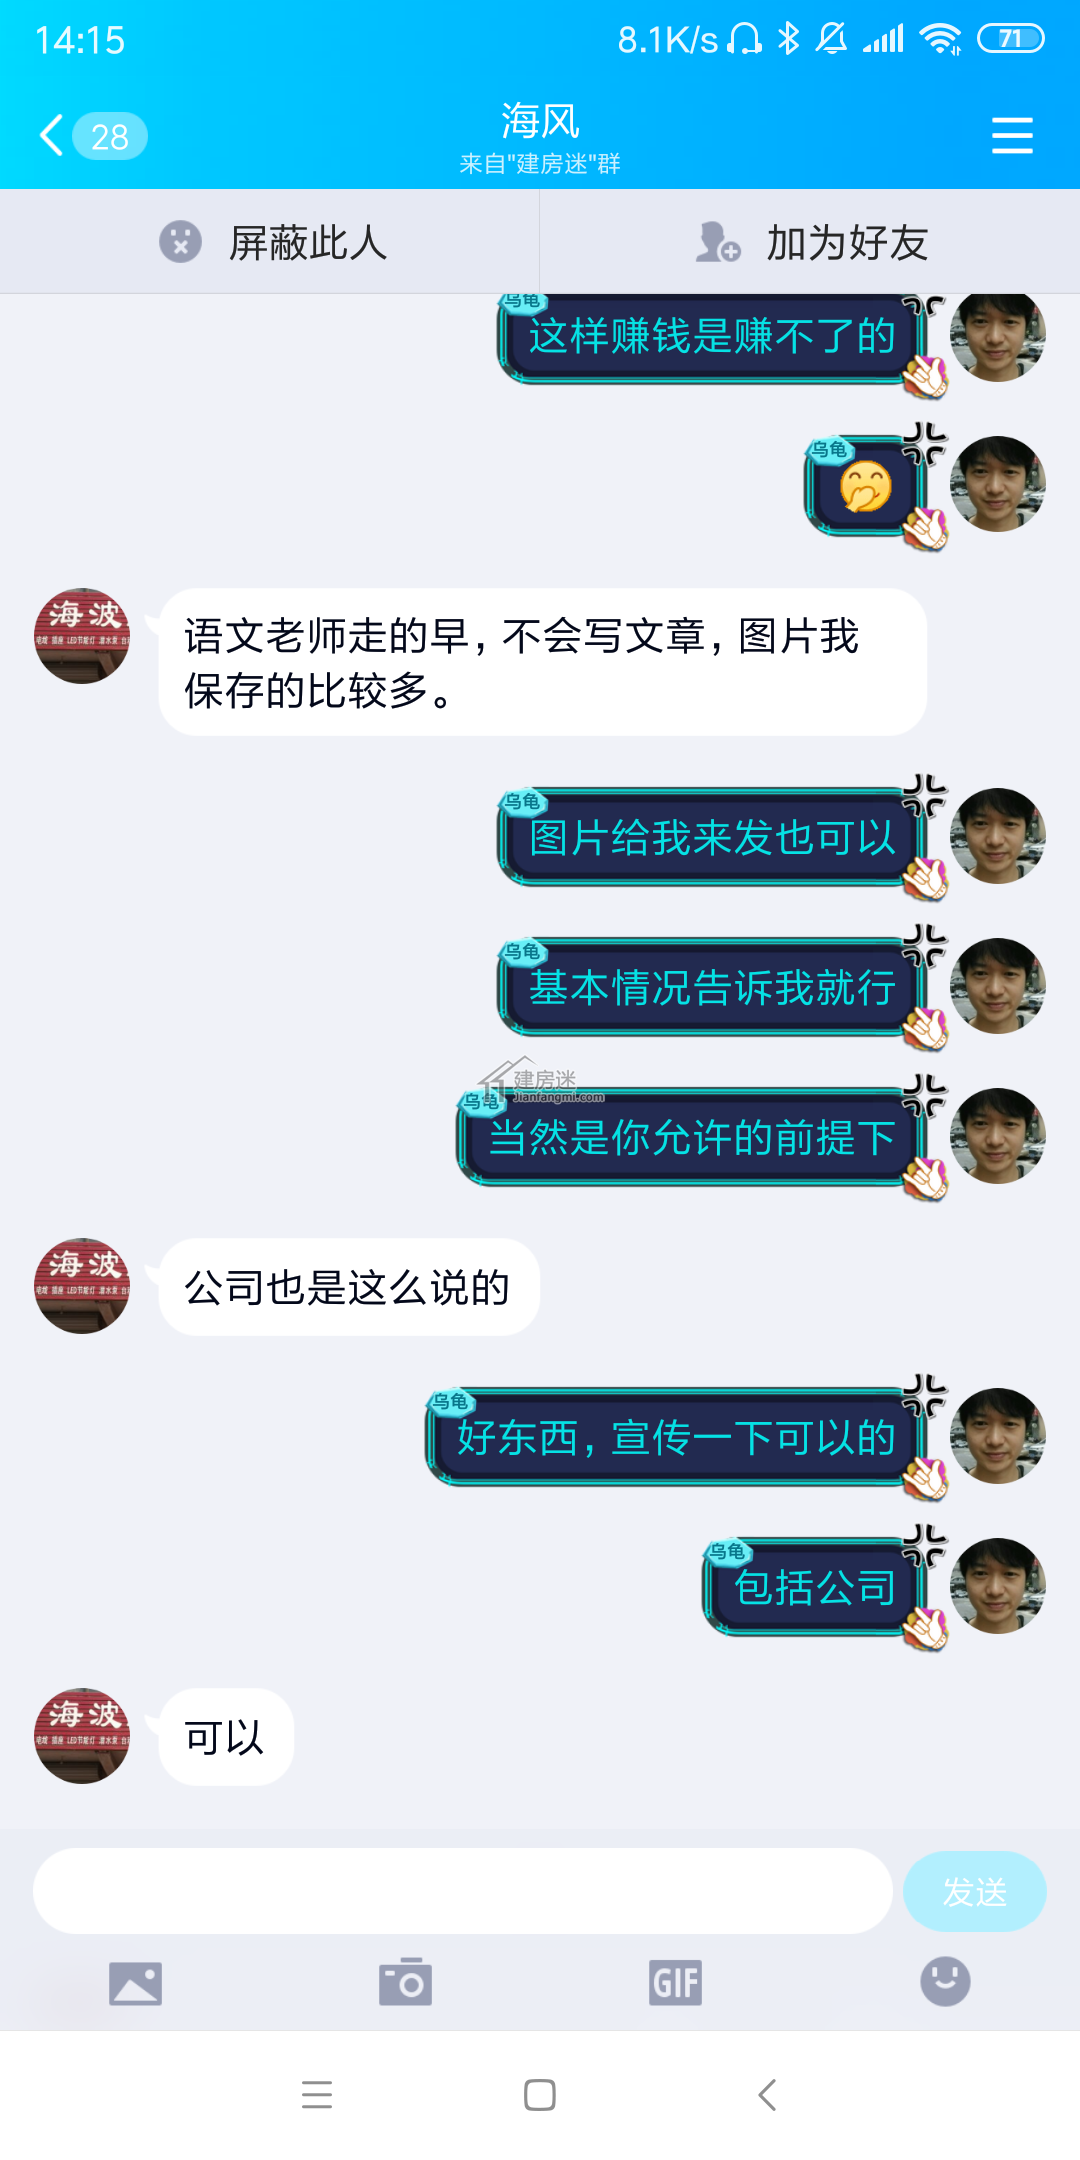 Screenshot_2019-06-05-14-15-44-016_com.tencent.mo.png